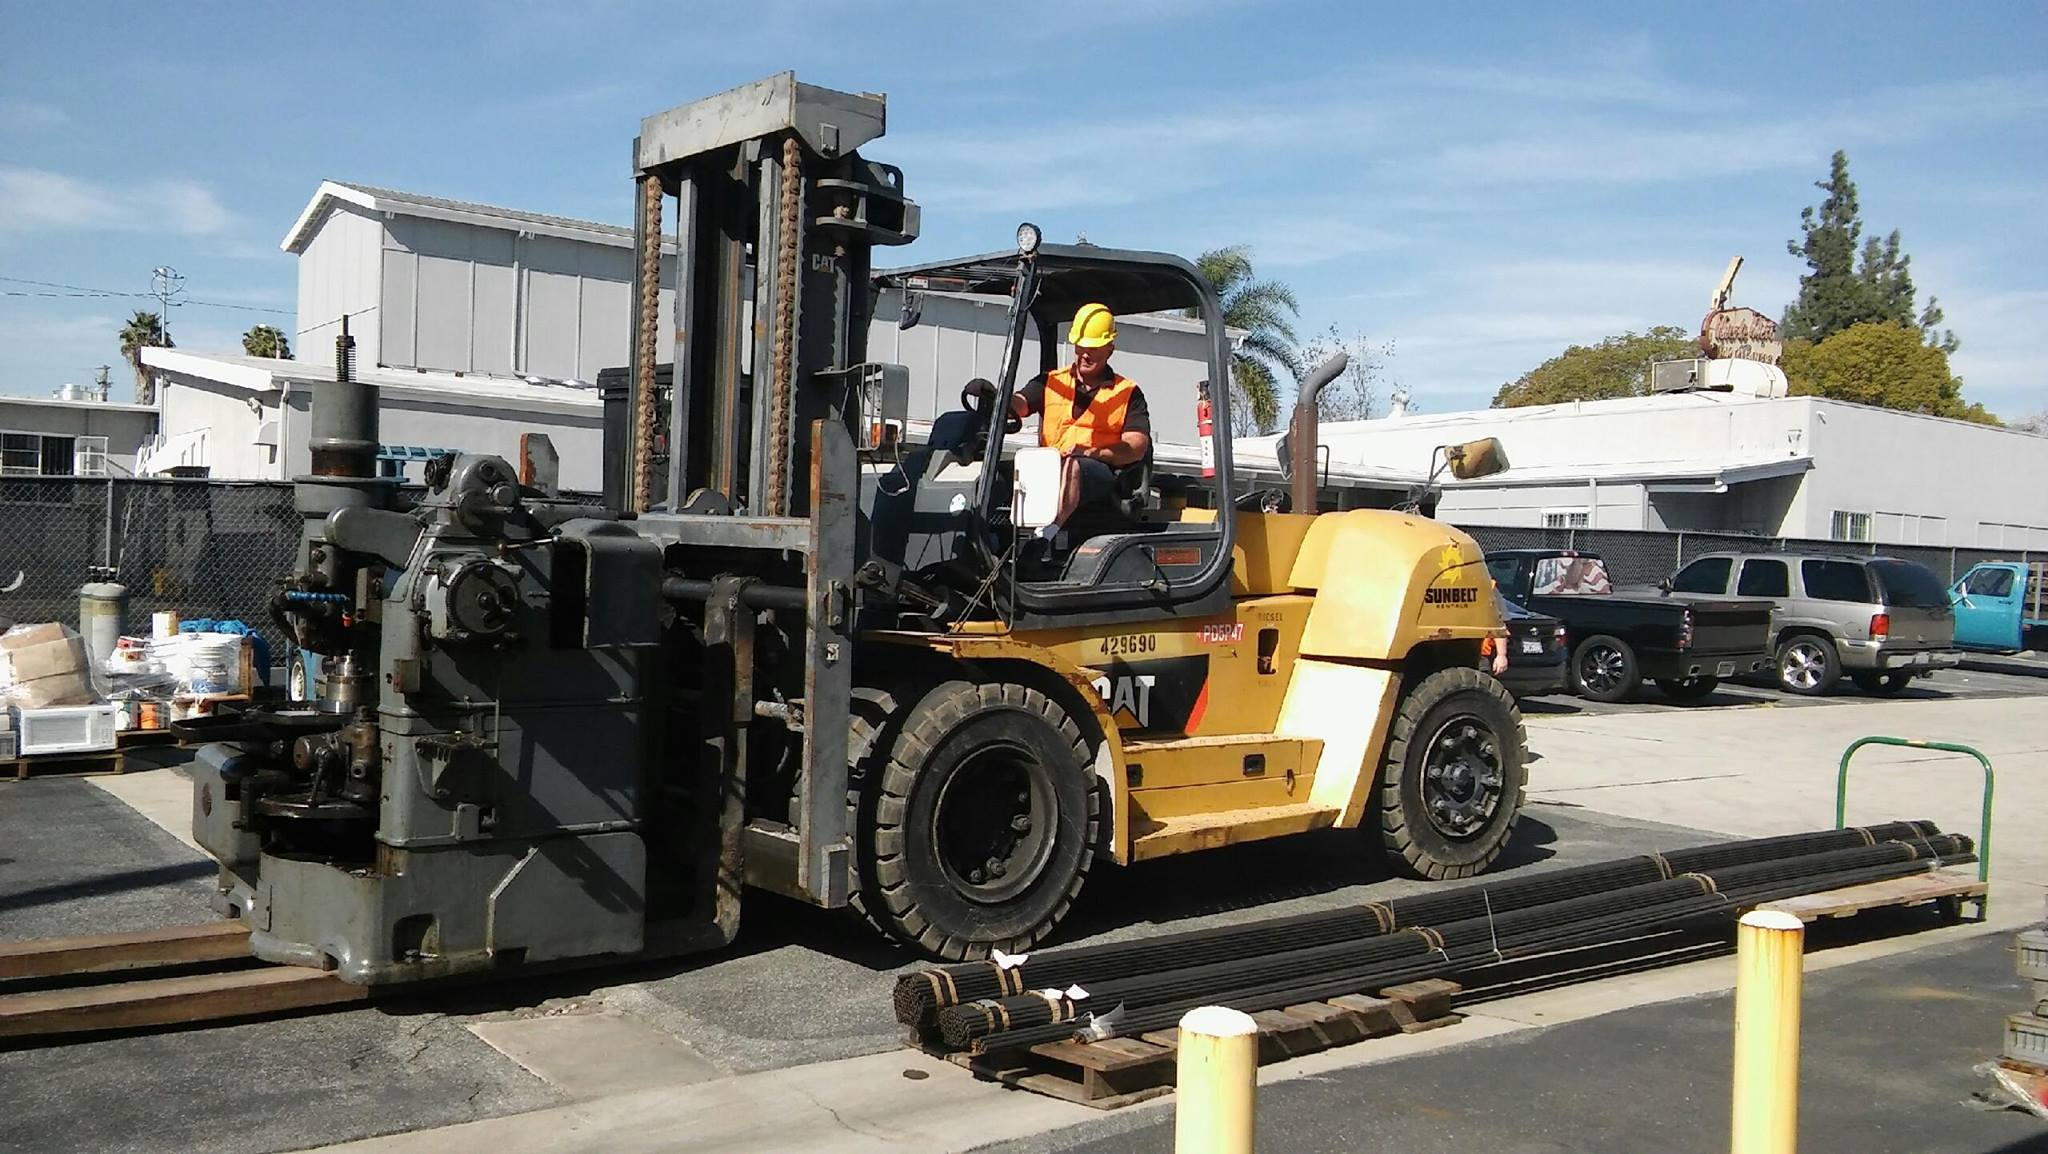 bucks movers forklift